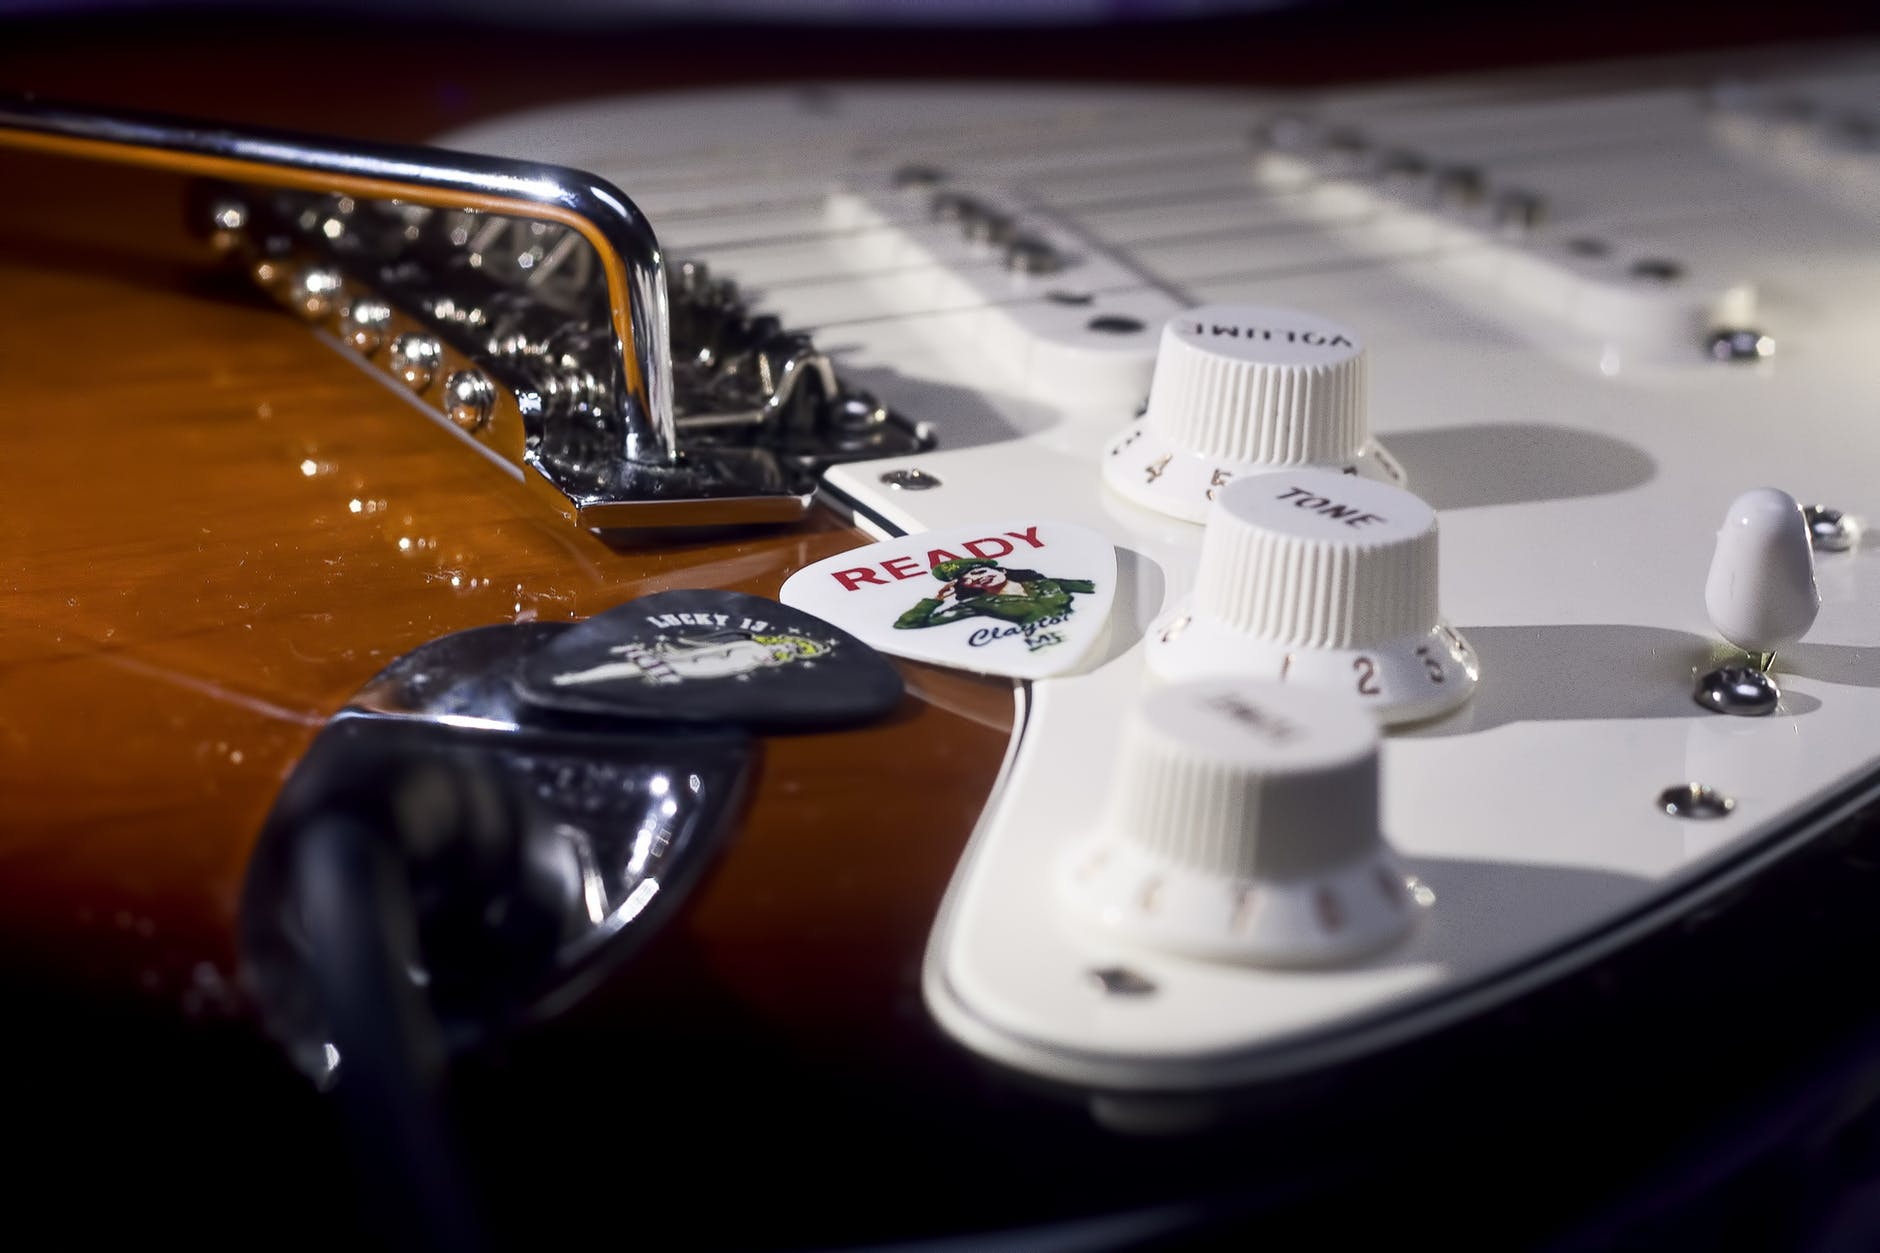 an electric guitar with an output jack